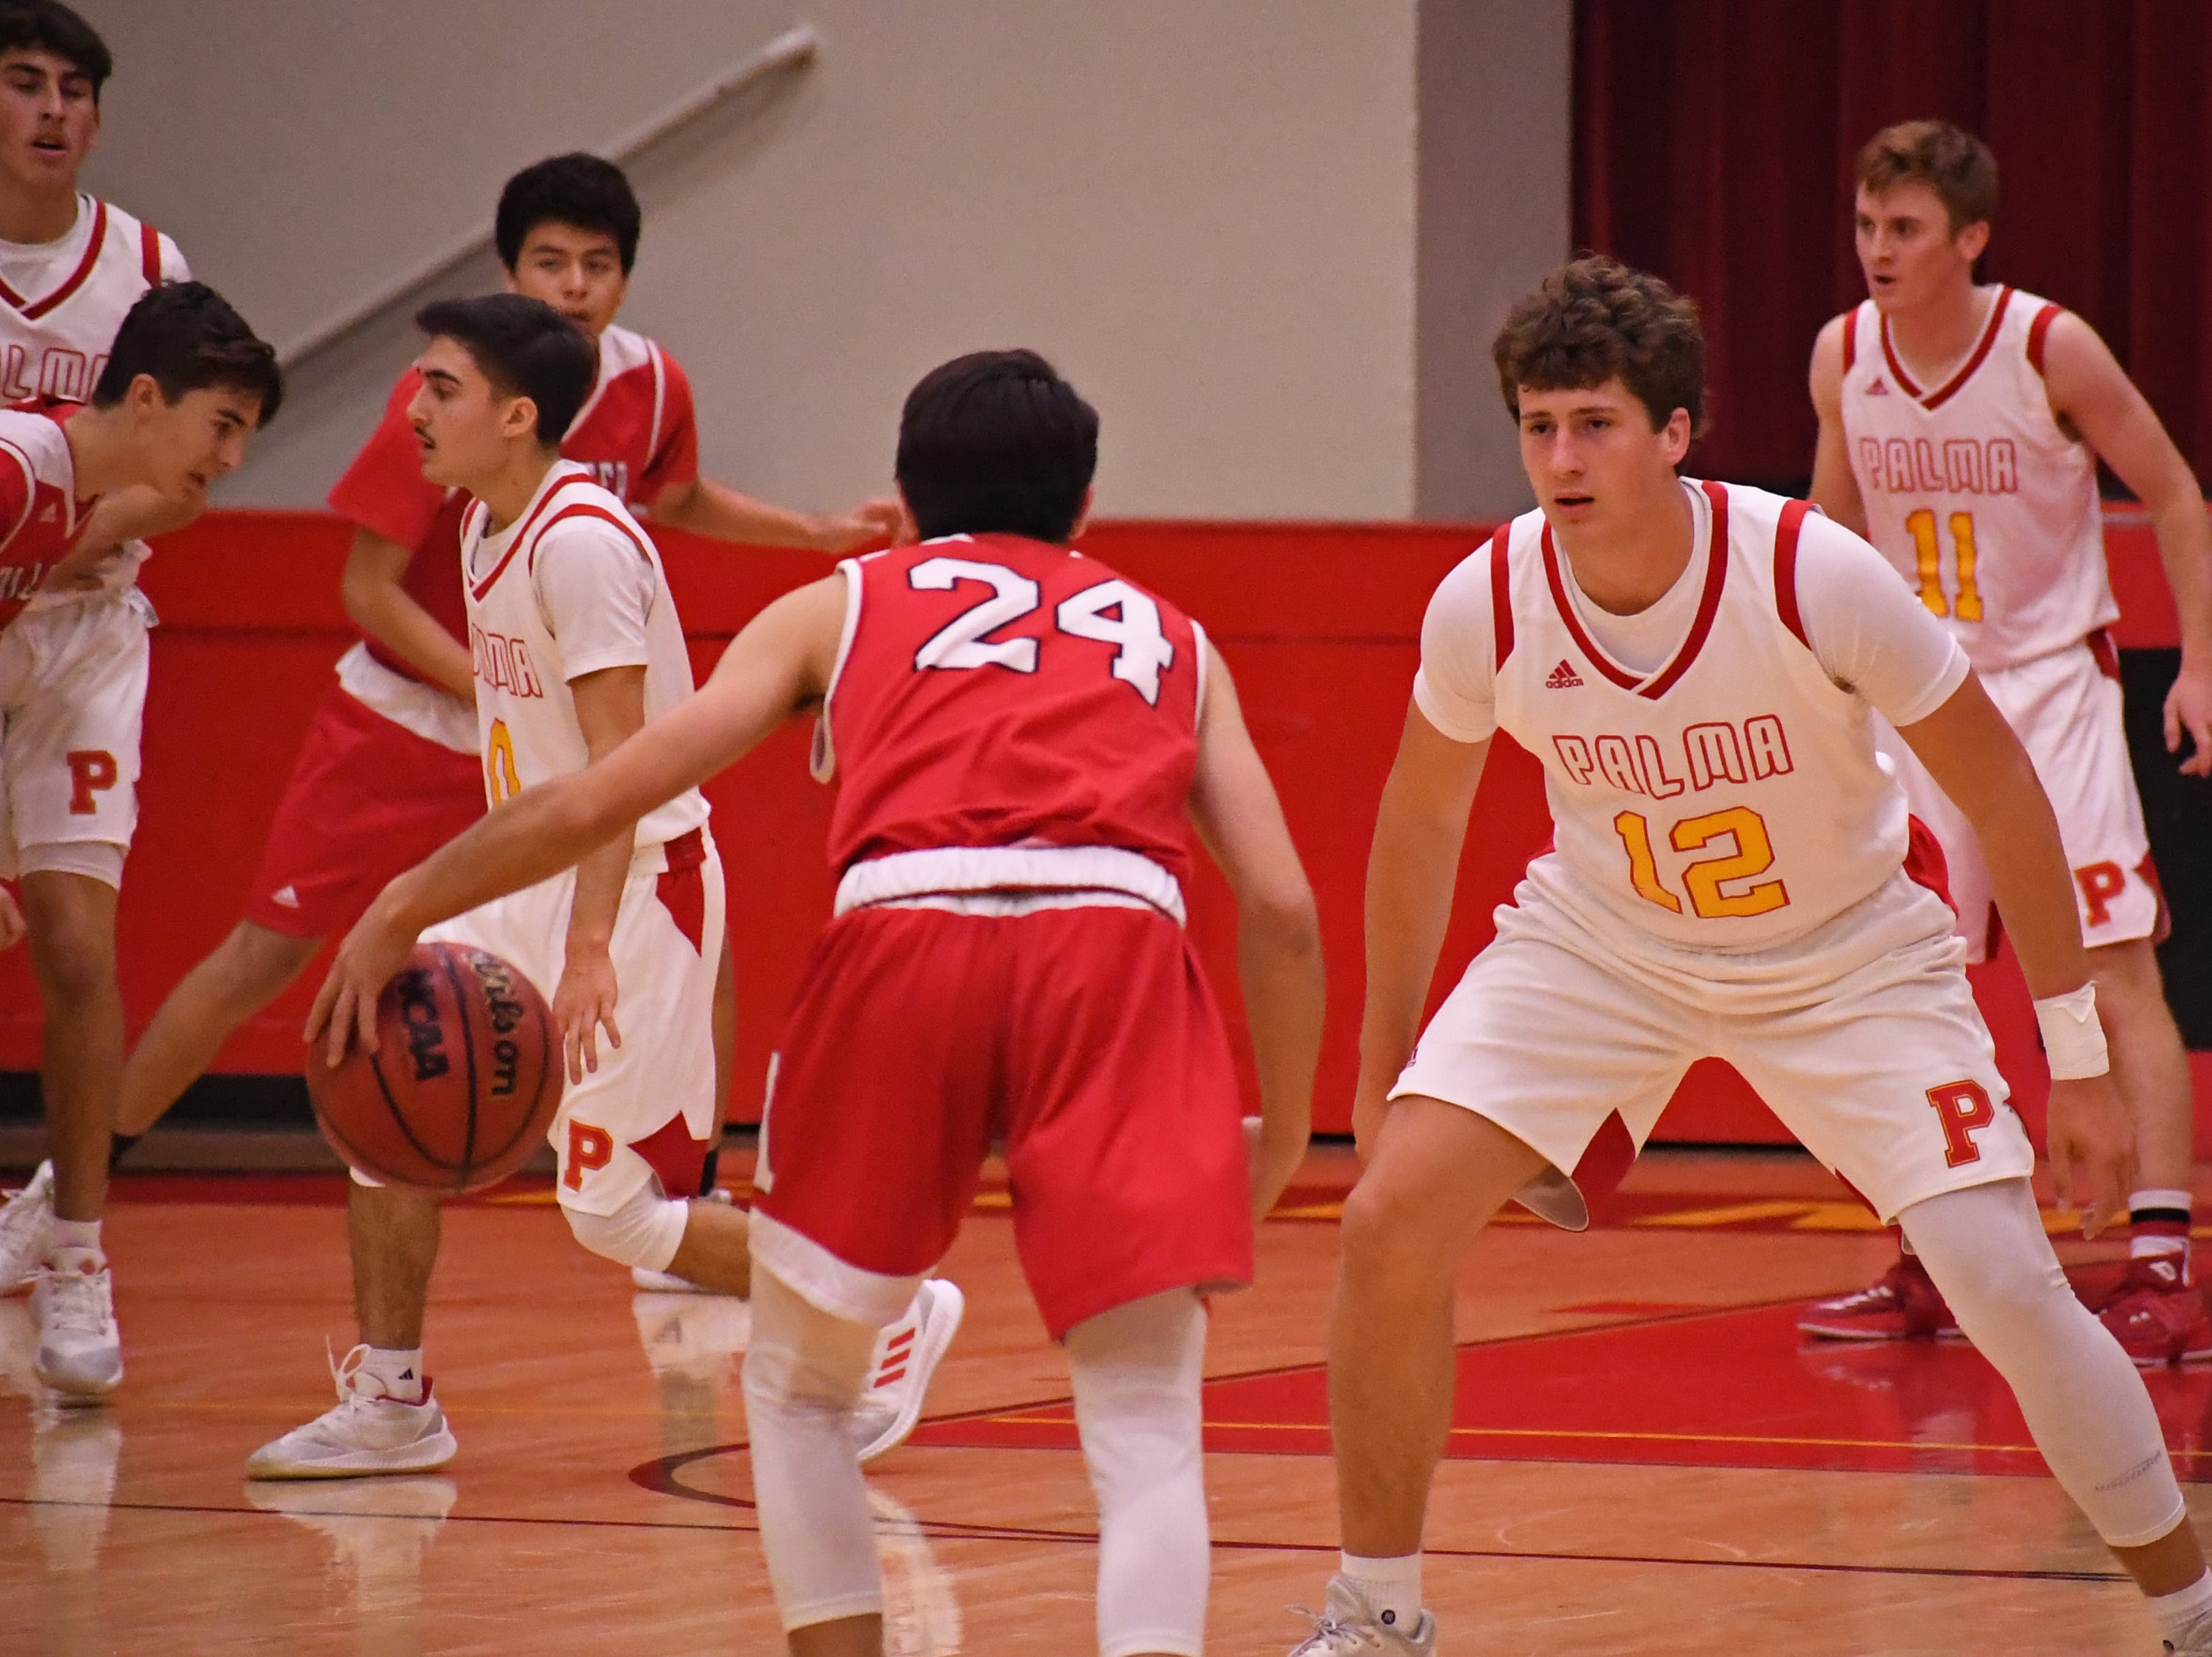 Palma forward Sam Lathos (12) keeps in front of his man on defense.